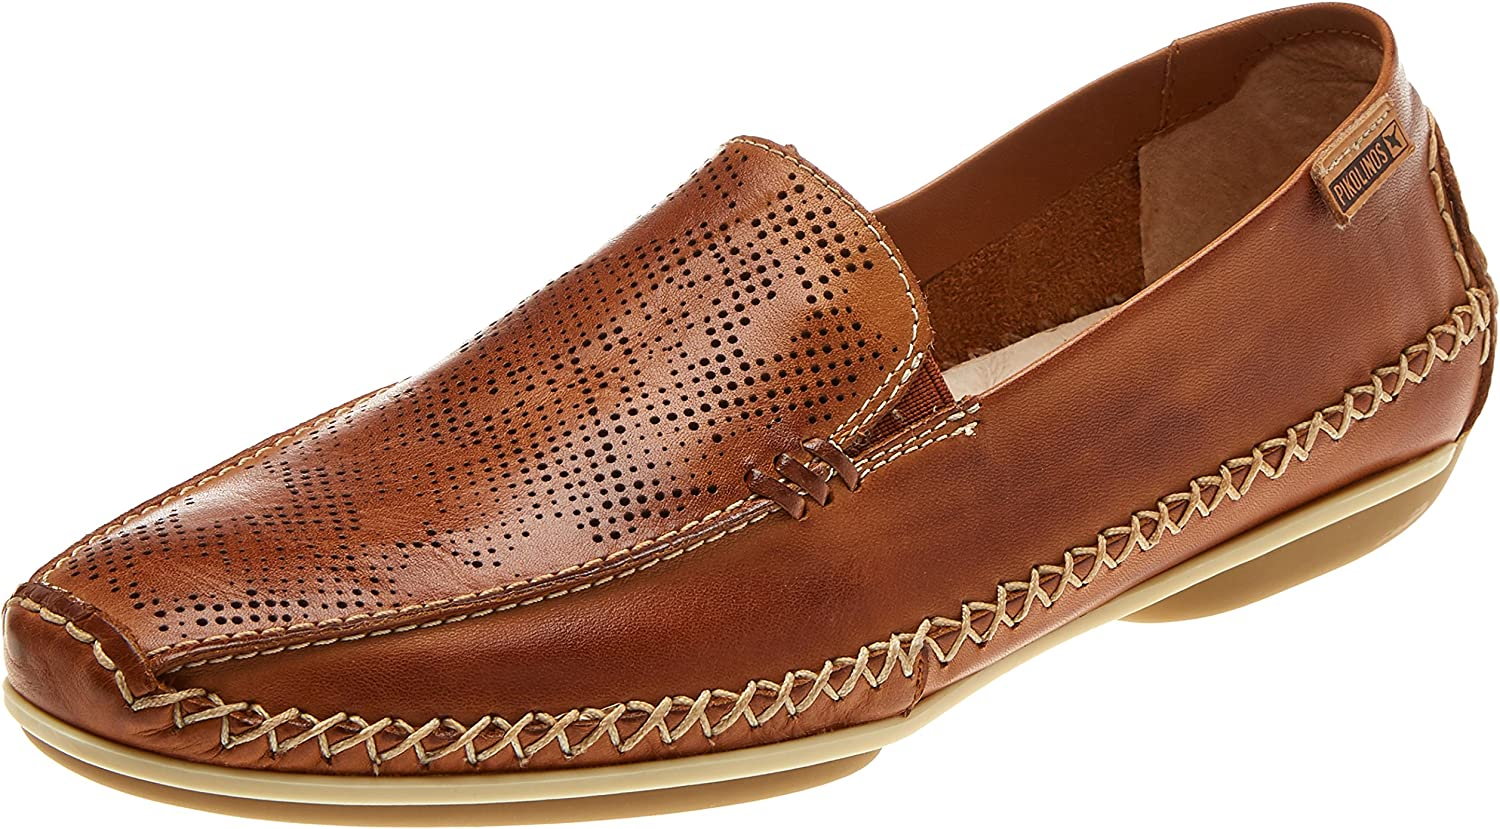 Pikolinos Women's W1r-4685 Leather Loafers